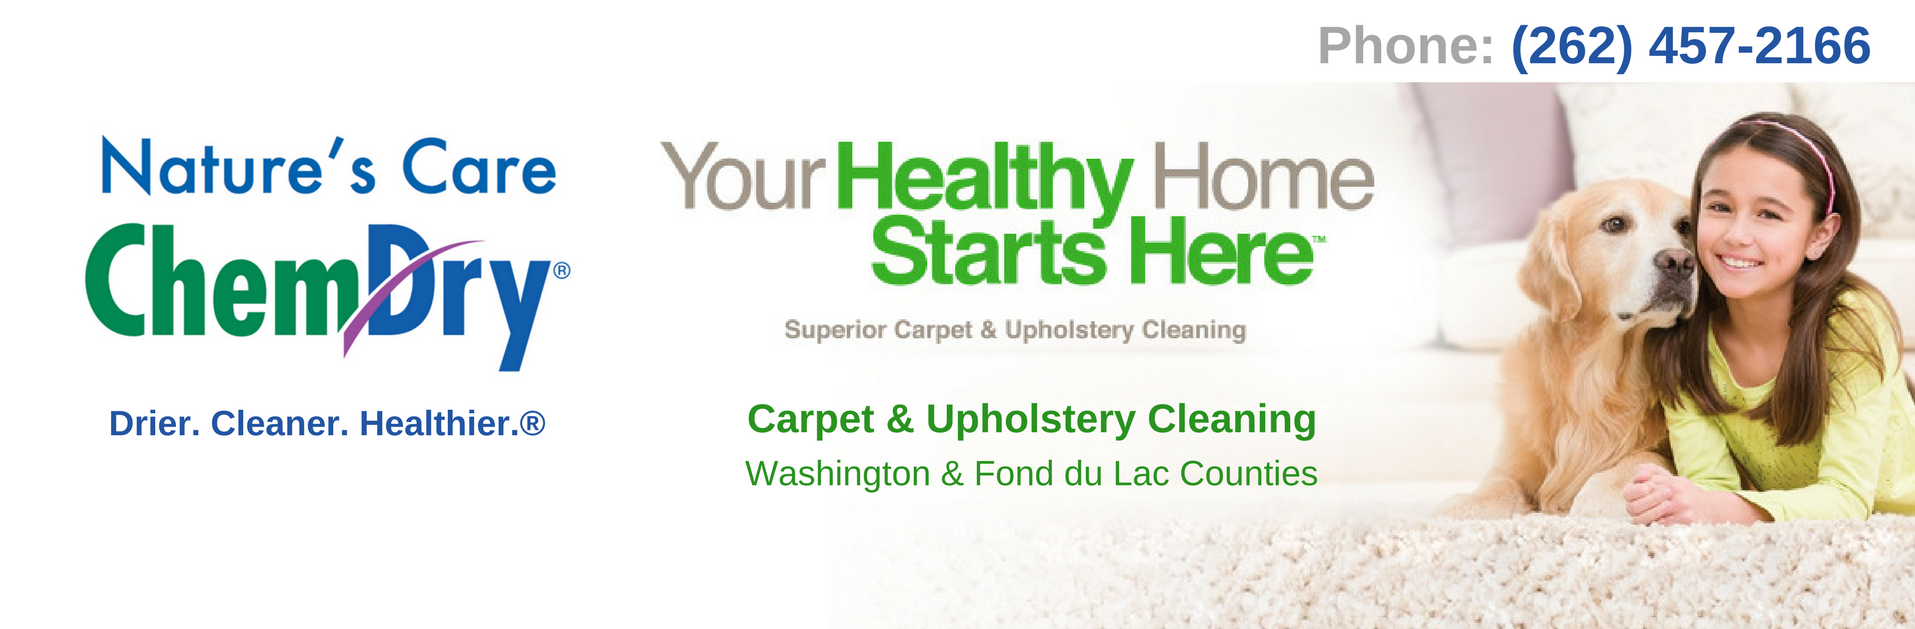 Carpet Cleaning Hartford Wi Nature S Care Chem Dry